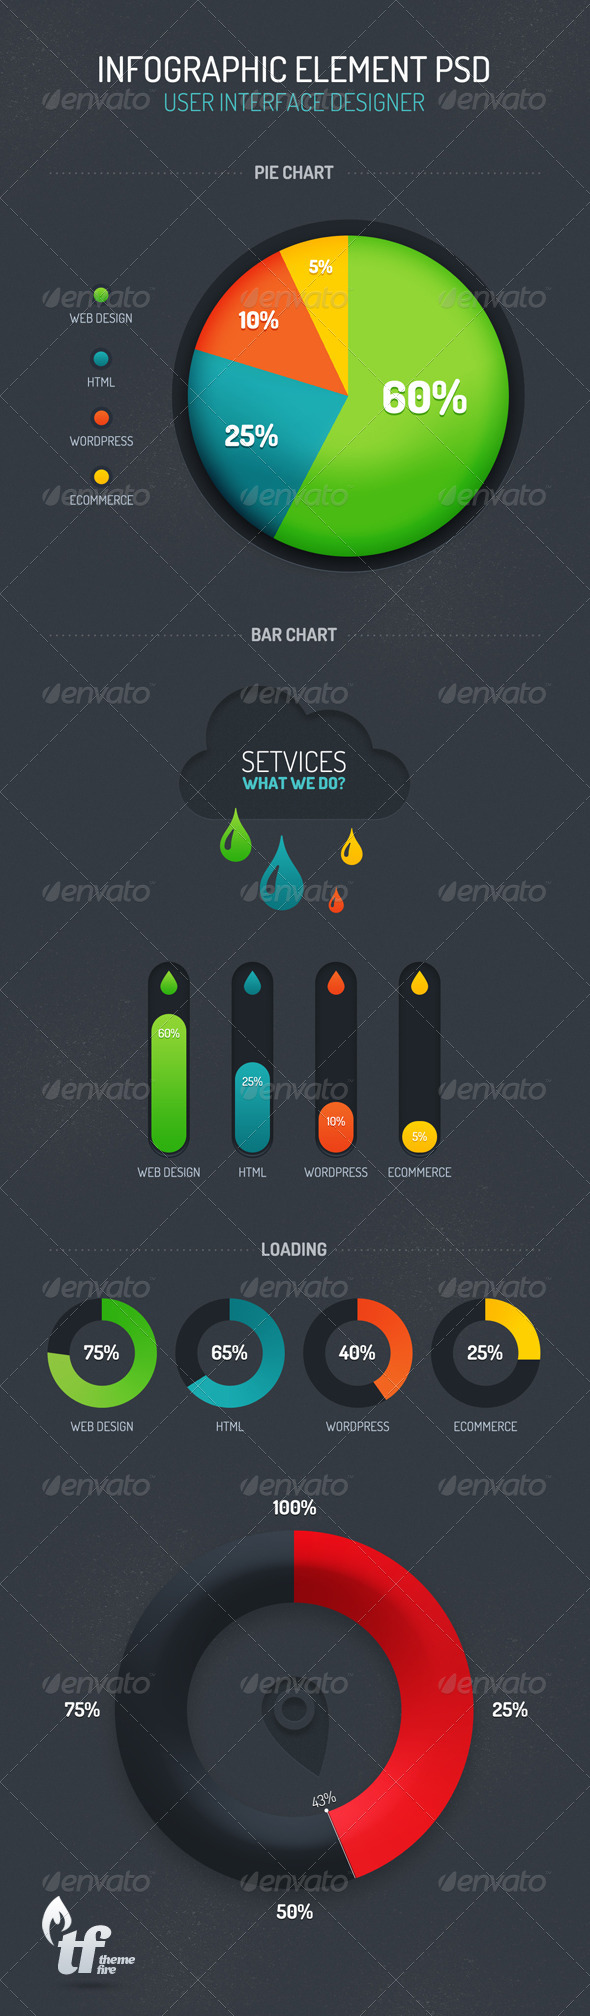 GraphicRiver Infographic Element PSD 6471108